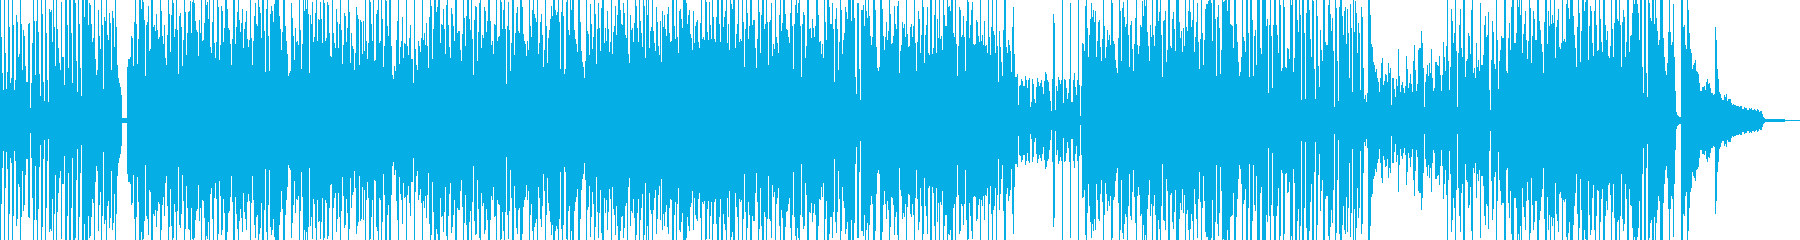 Cartoon-style piano jazz + percussion instrument's reproduced waveform